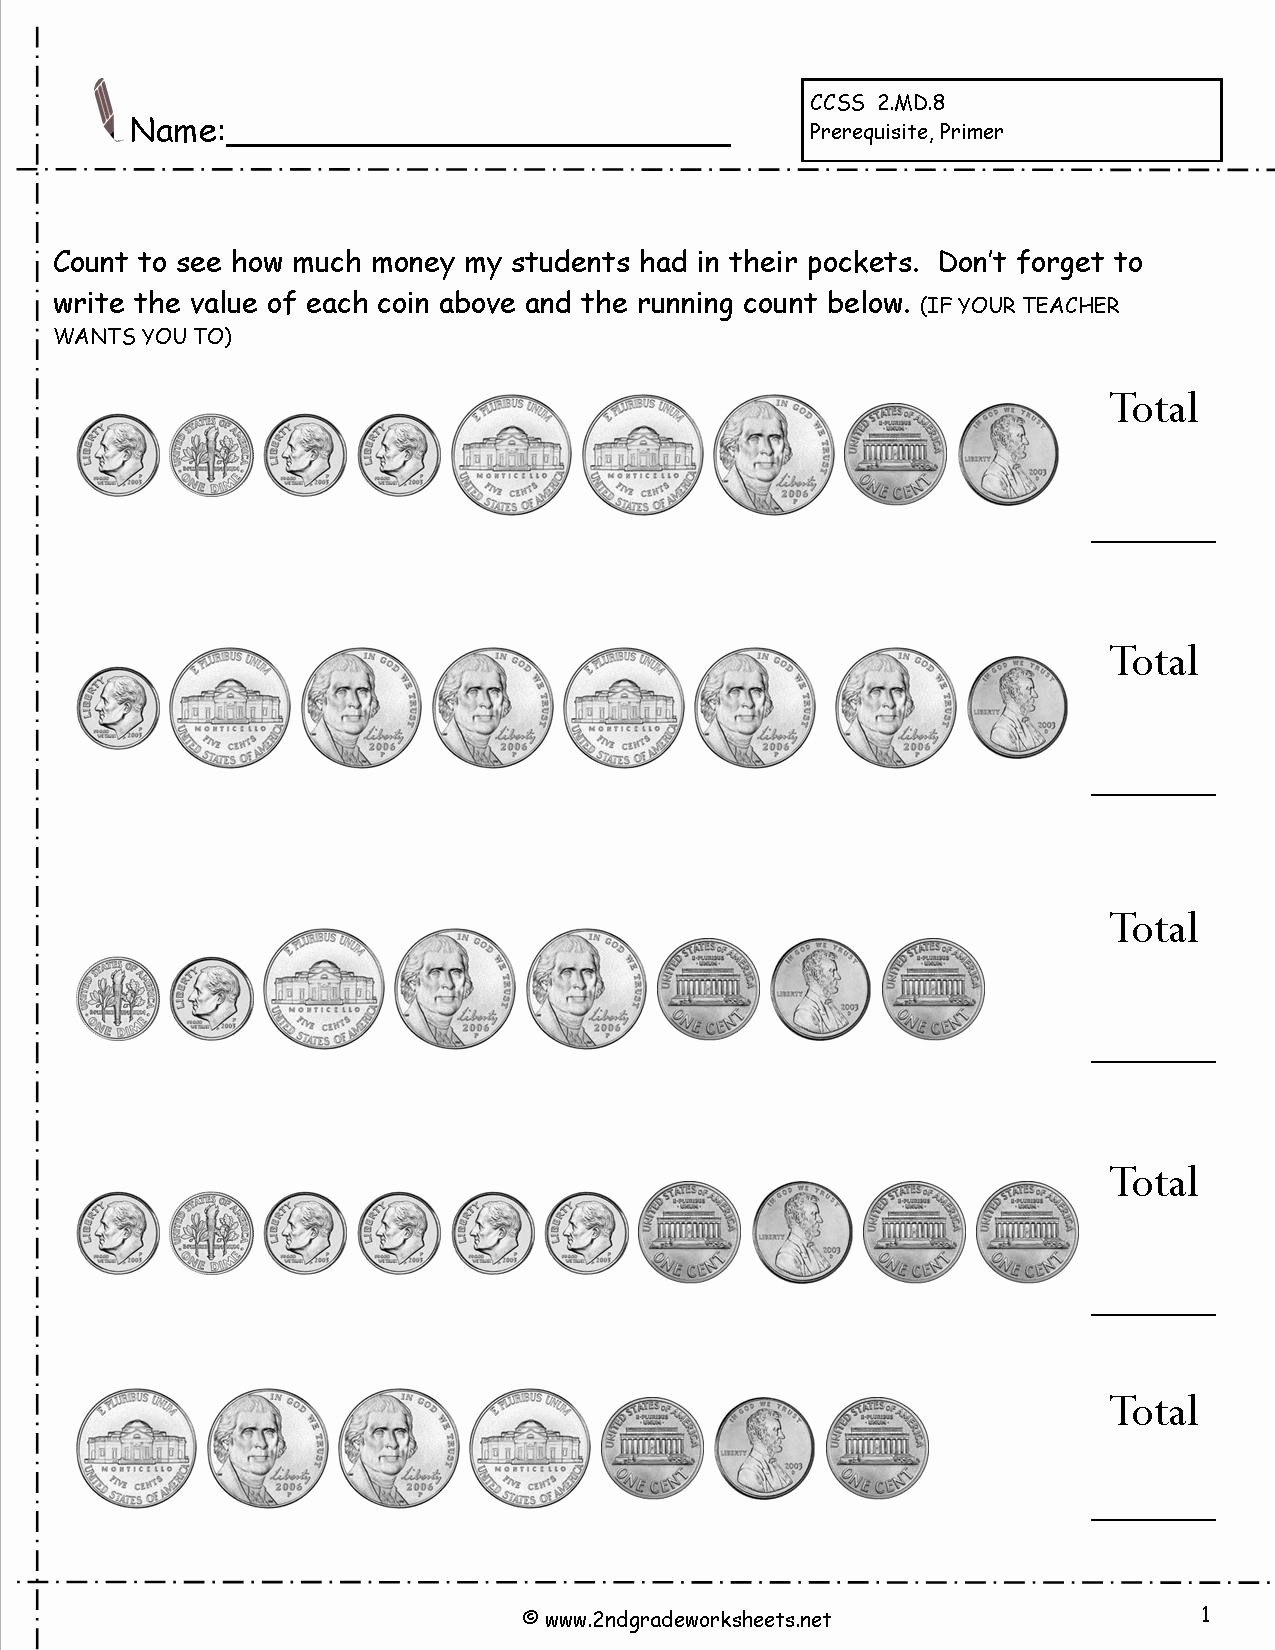 Counting Coins Worksheets Best Of Counting Coins and Money Worksheets and Printouts